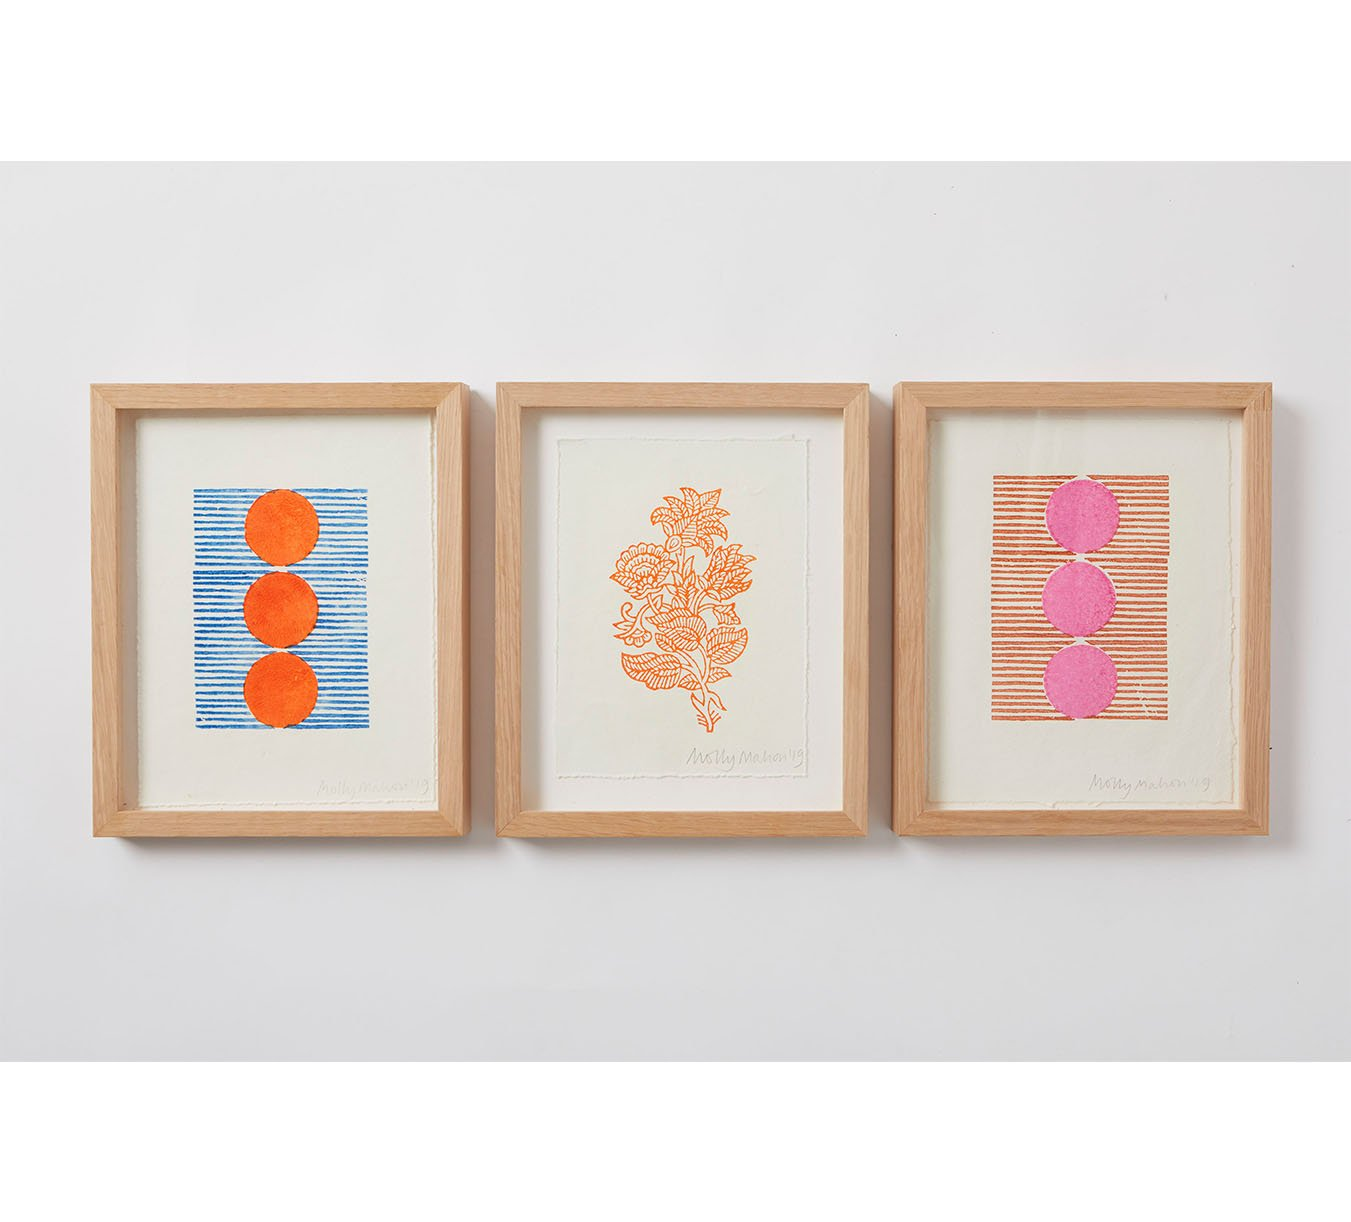 Framed - Cotton Paper Print - Trio 4